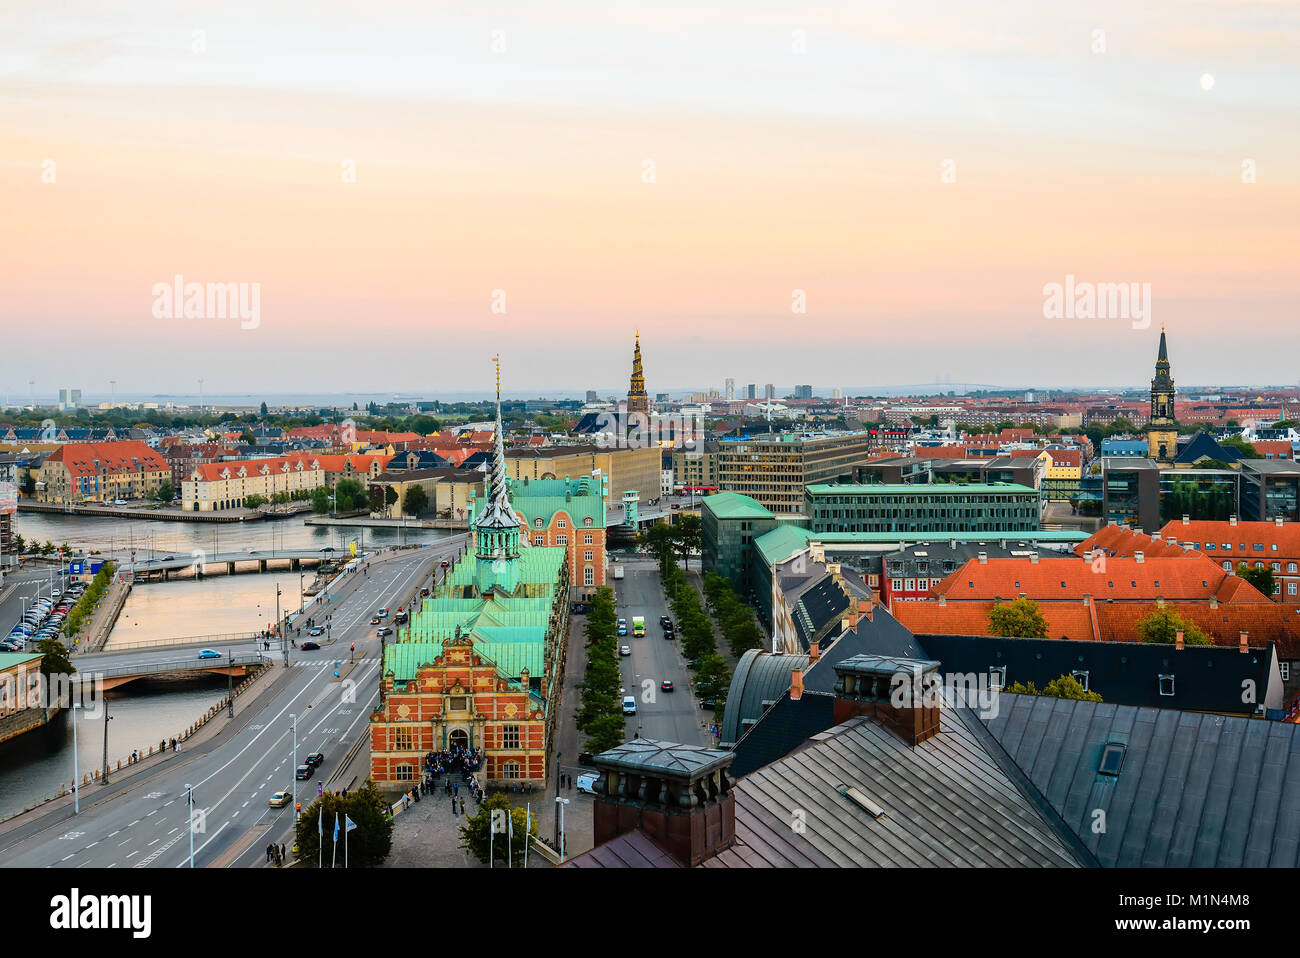 Copenhagen view from above Christiansborg. Our Saviour church spire, old stock exchange building, bridges over canal. - Stock Image